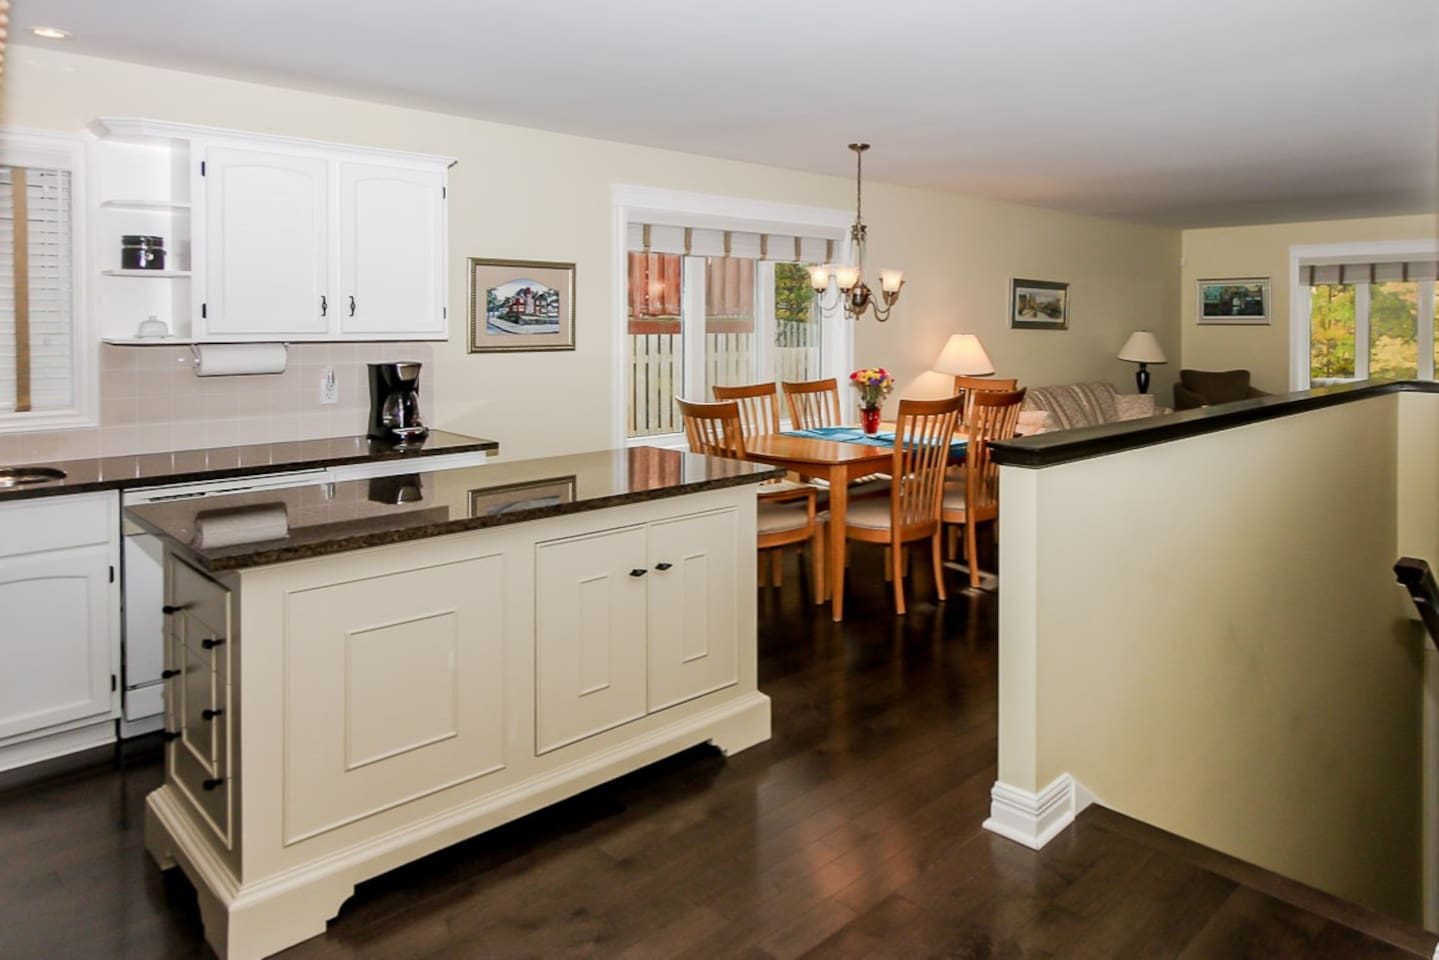 Open concept kitchen, dining and living room. Over 1000 square feet for your private use during your stay.